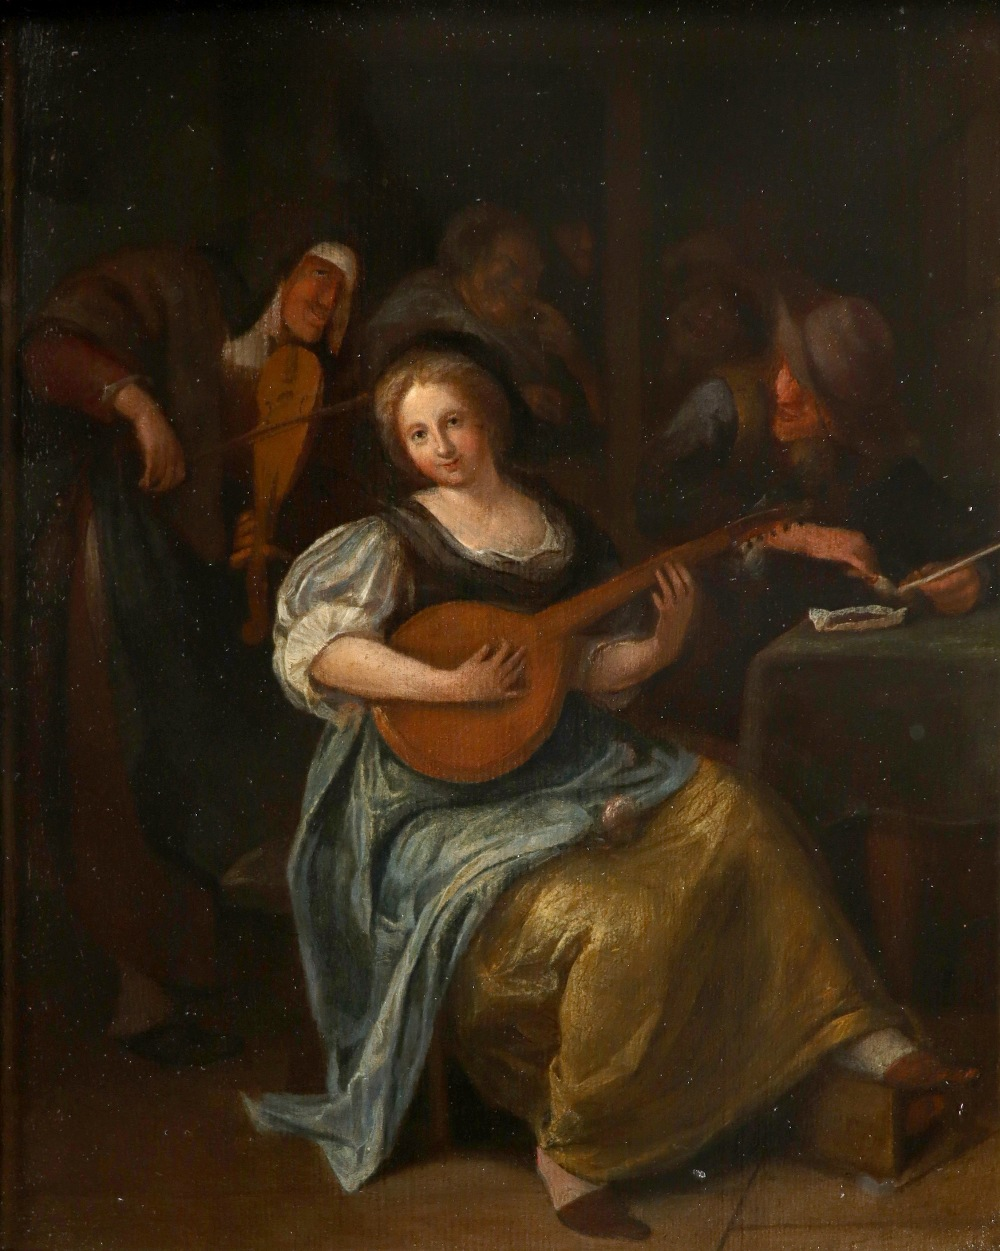 Circle of Jan Steen Tavern scene with a young woman playing a lute Oil on panel 29 x 23.5cm; 11½ x